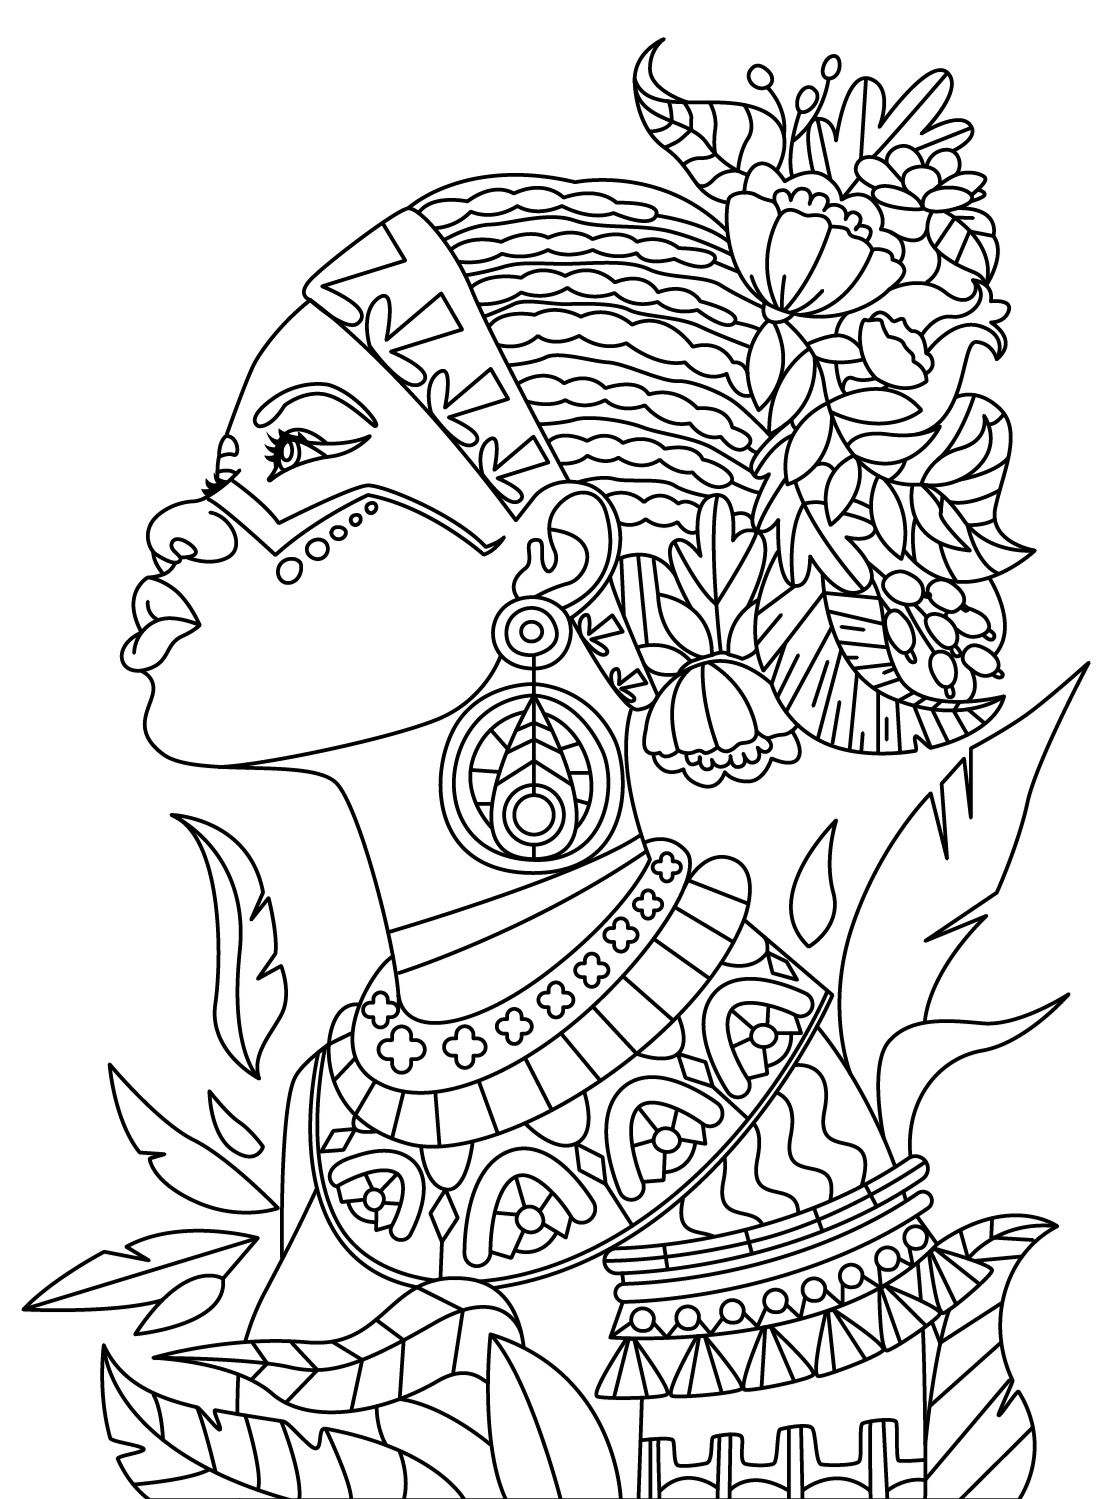 coloring africa the best free relax coloring page images download from 71 coloring africa